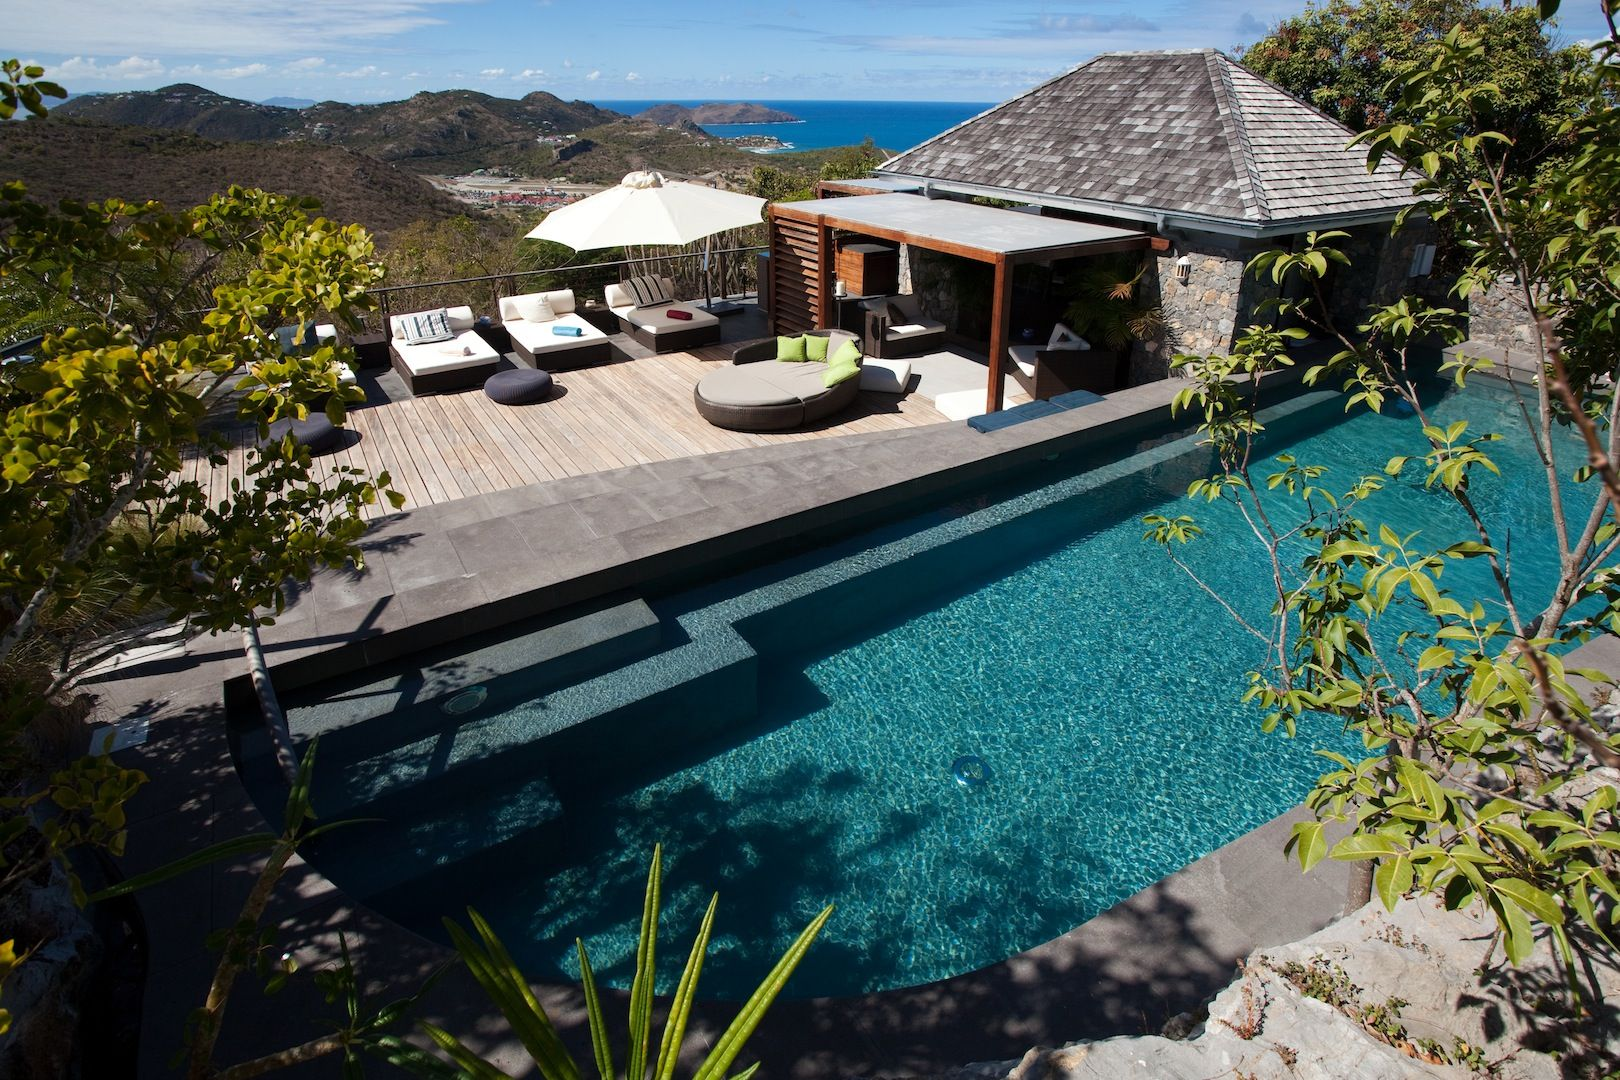 Le Manoir de Lurin, 5-bedroom luxury estate on the hills of Lurin....the charm of an old Caribbean plantation house mixed with the latest features of a contemporary luxury villa.